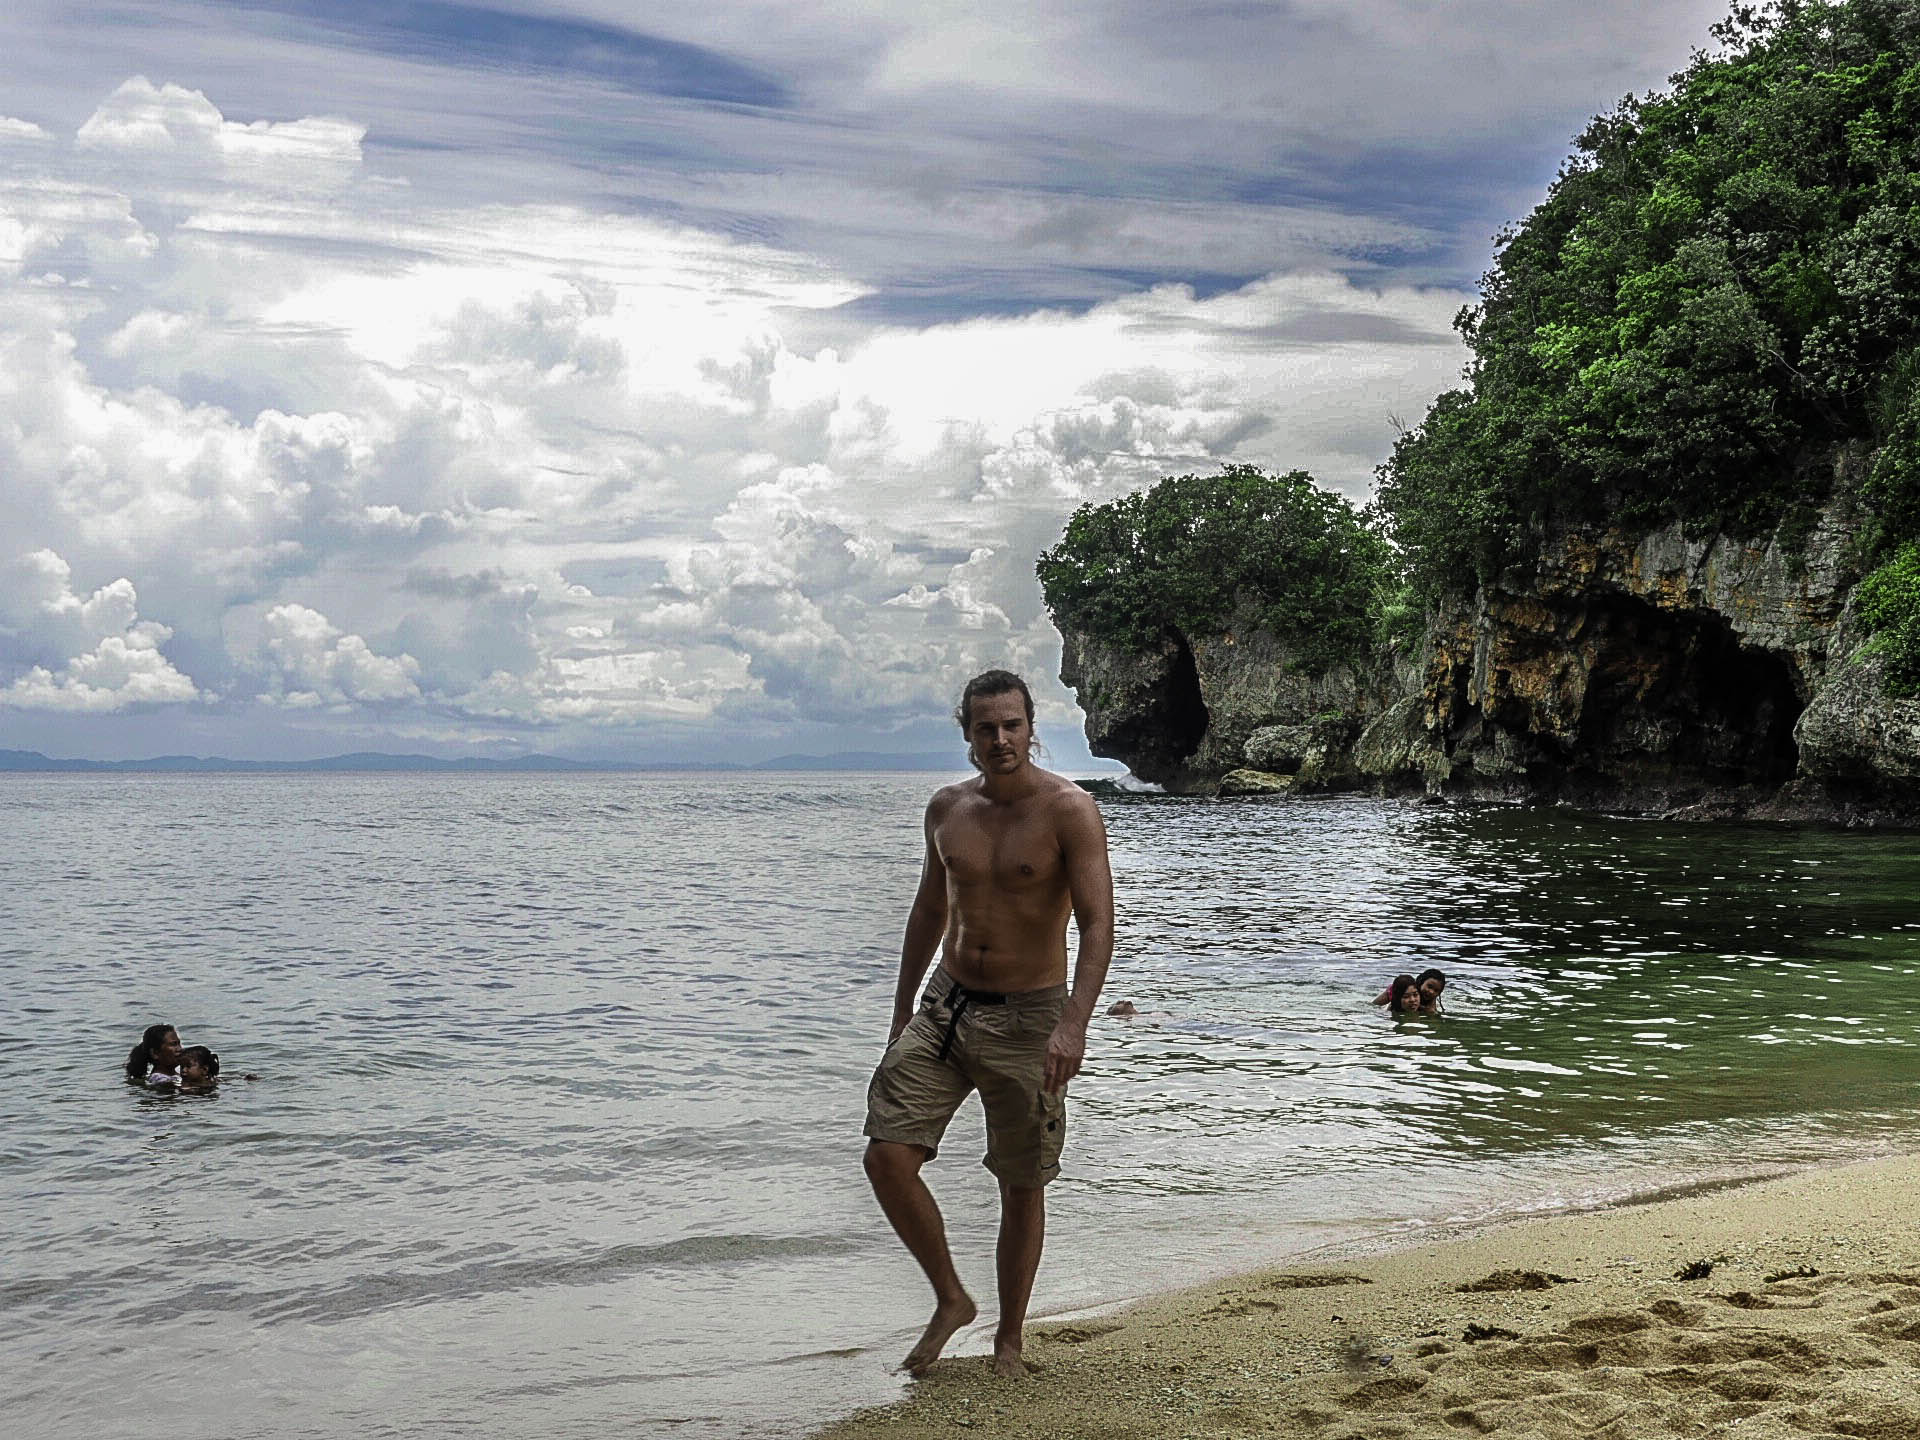 lenny through paradise walking on talisoy beach in catanduanes philippines